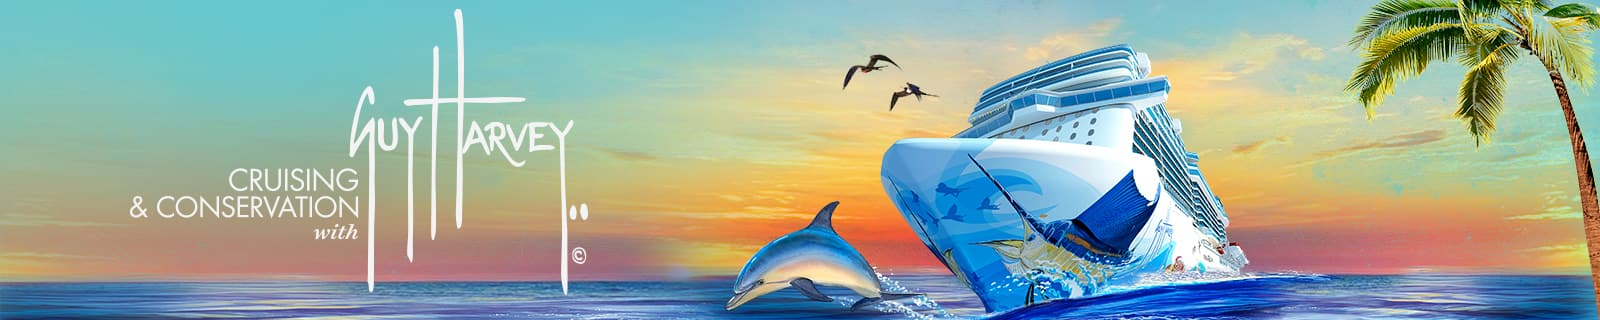 Guy Harvey Conservation Cruise